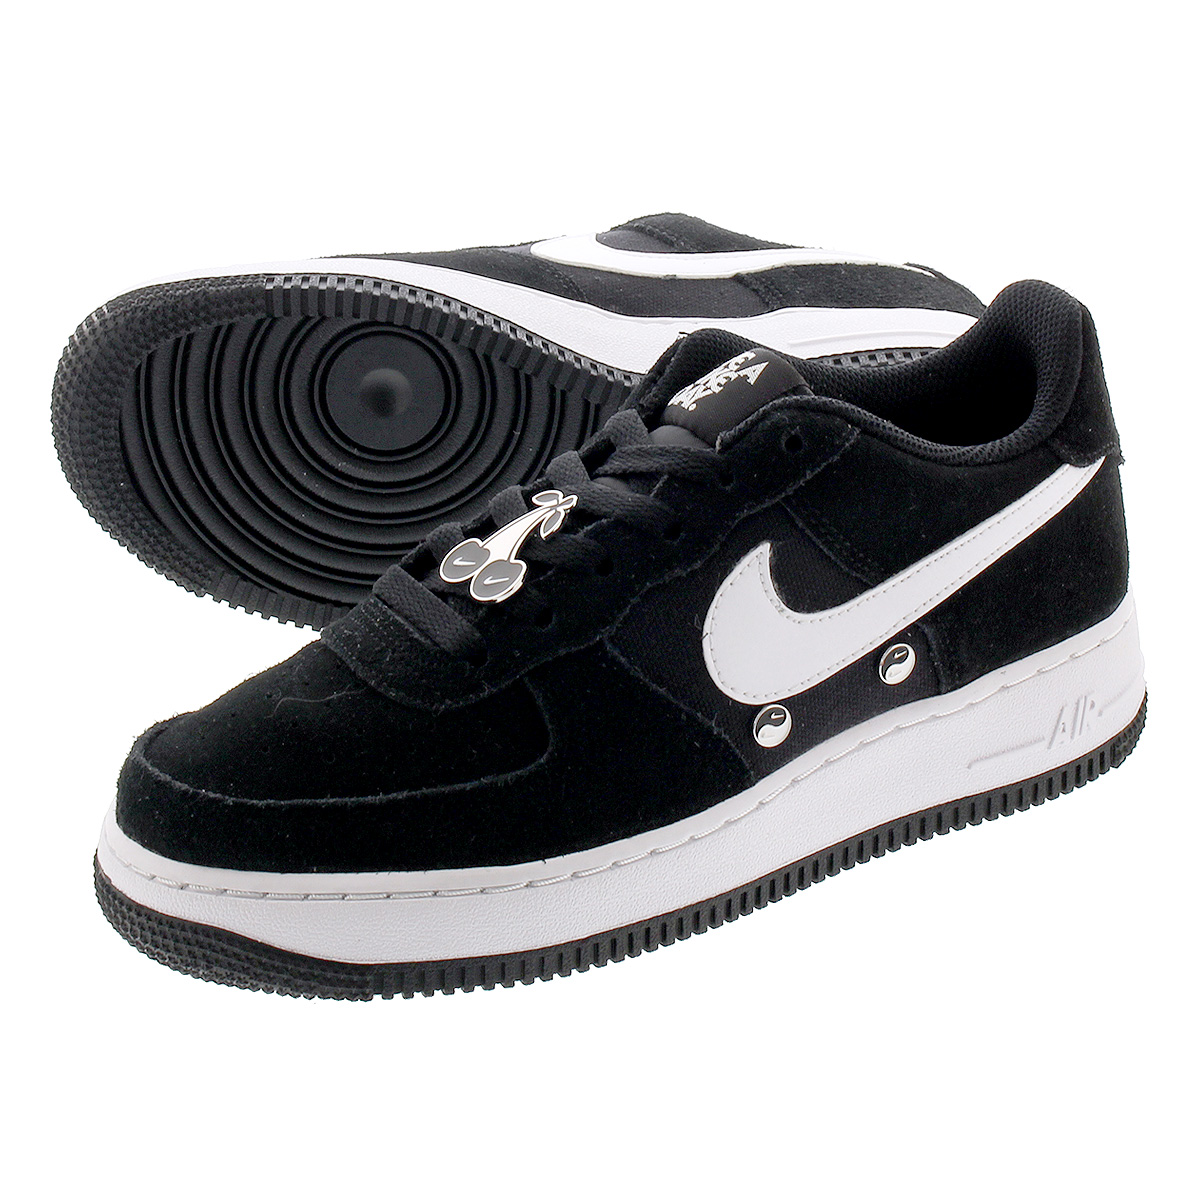 NIKE AIR FORCE 1 LV8 NK DAY GS Nike air force 1 LV8 NK DAY GS BLACKWHITE bq8273 001